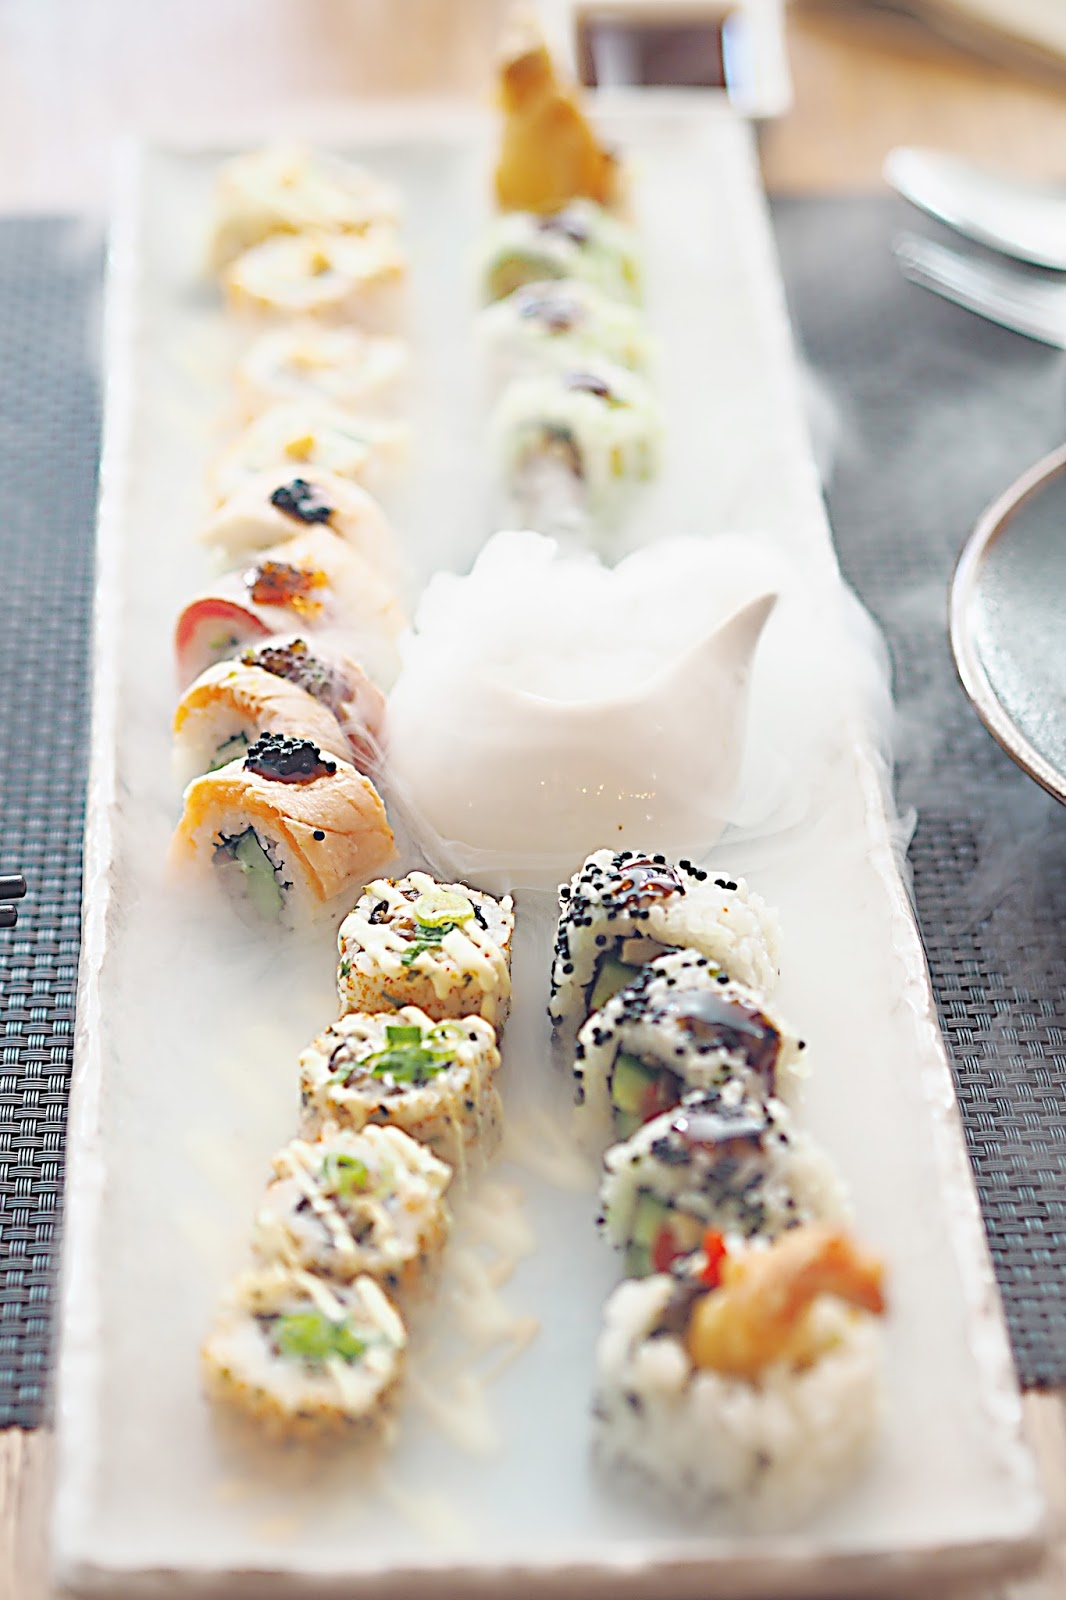 Mixed sushi Maki platter with dry ice